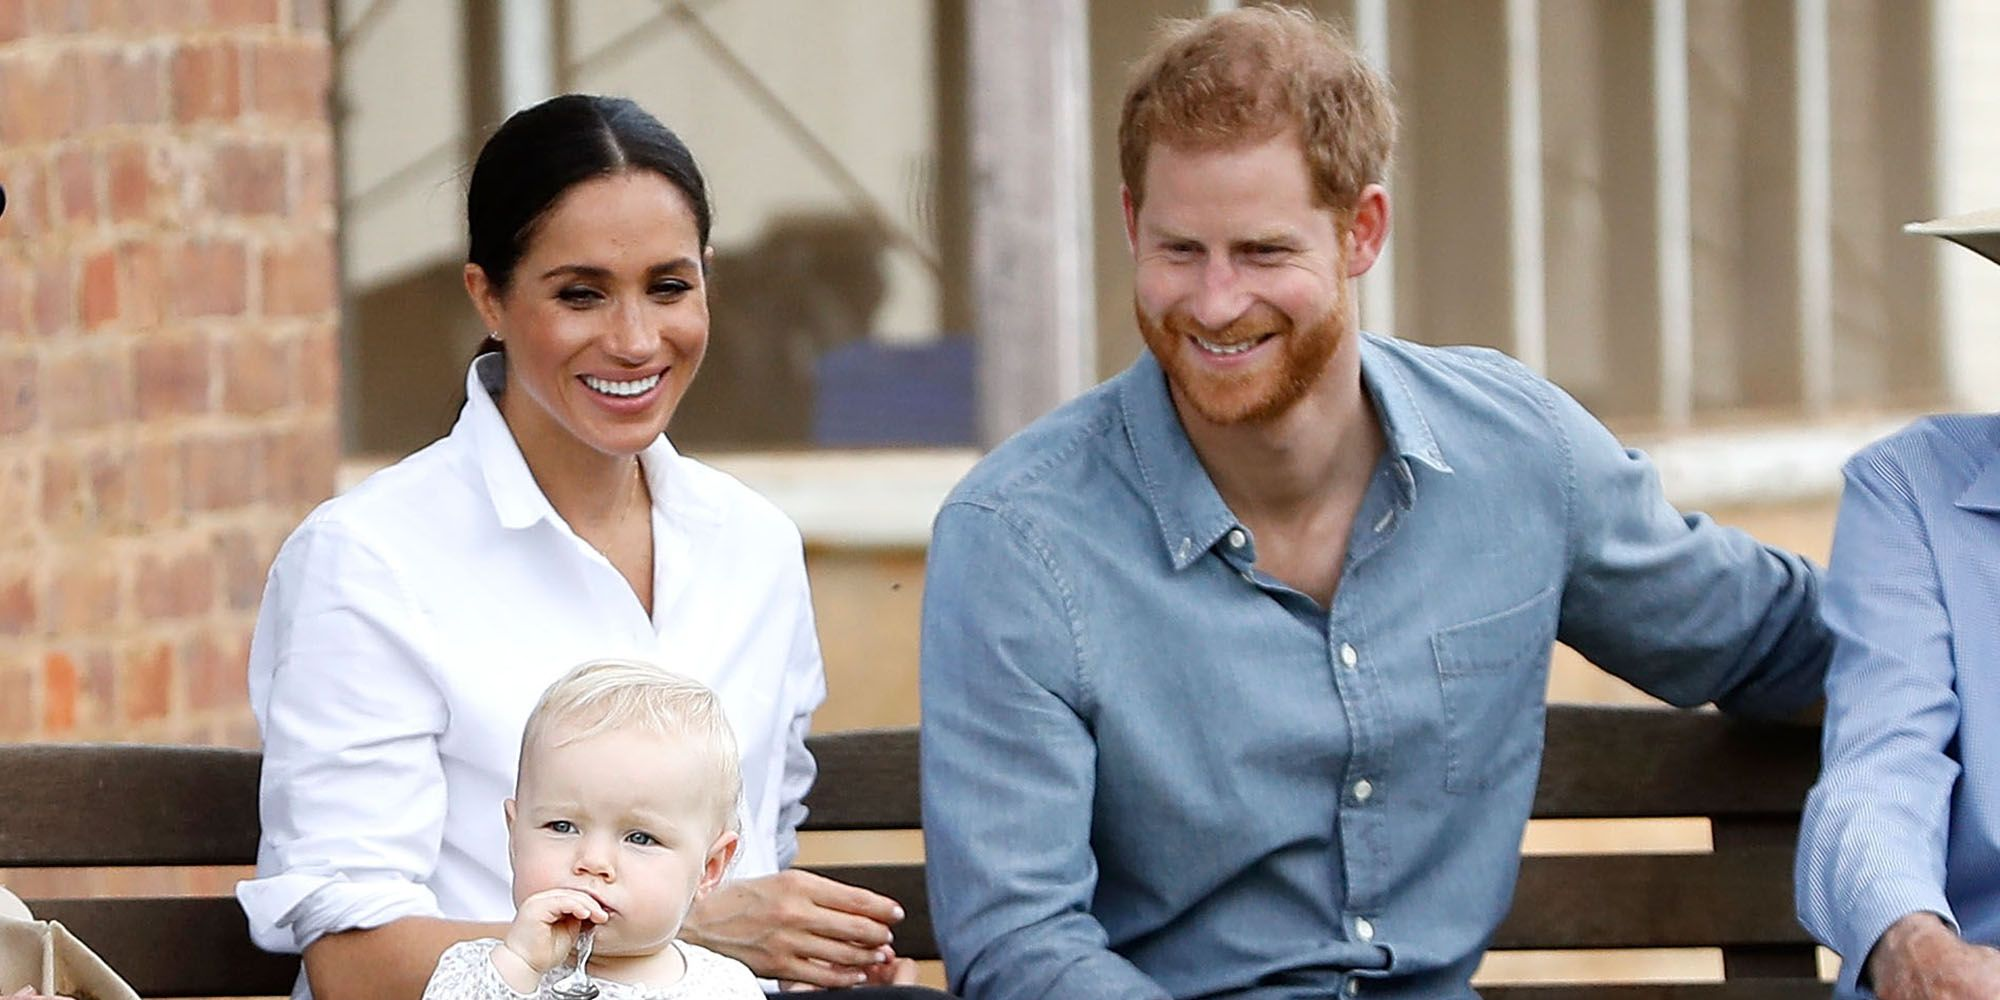 Here's What Will Happen if Prince Harry and Meghan Markle's Unborn Baby Gets Too Big ile ilgili görsel sonucu